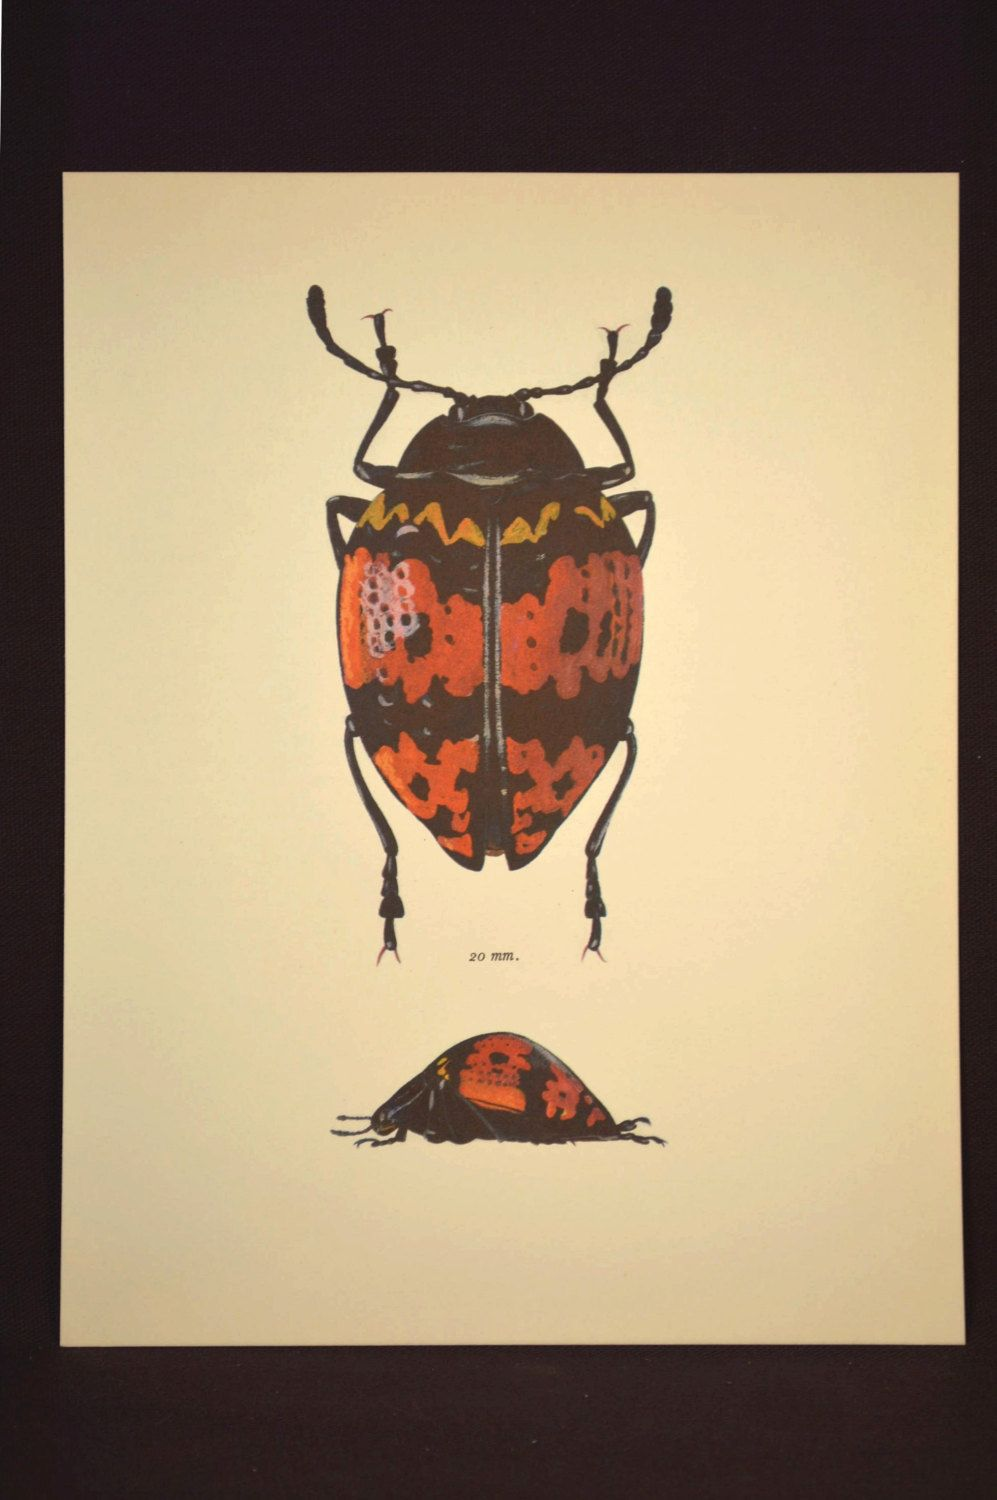 Insect Wall Art Beetle Print Decor Bug Art Nature Vintage | Decor ...